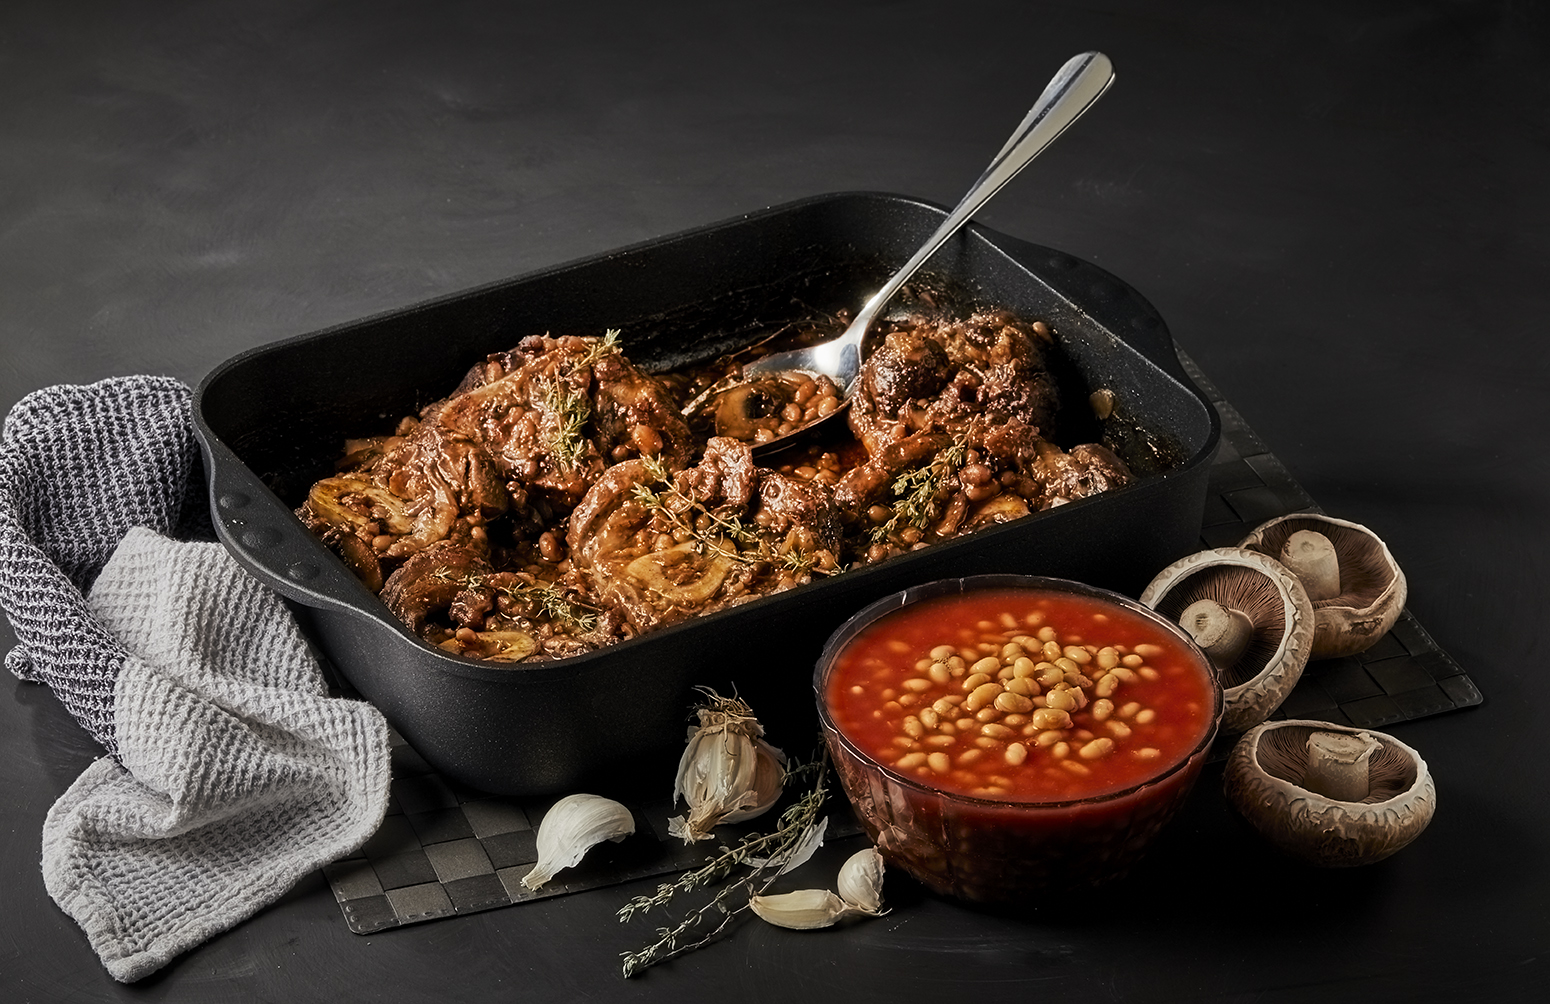 Braised Beef with Beans and Guinness